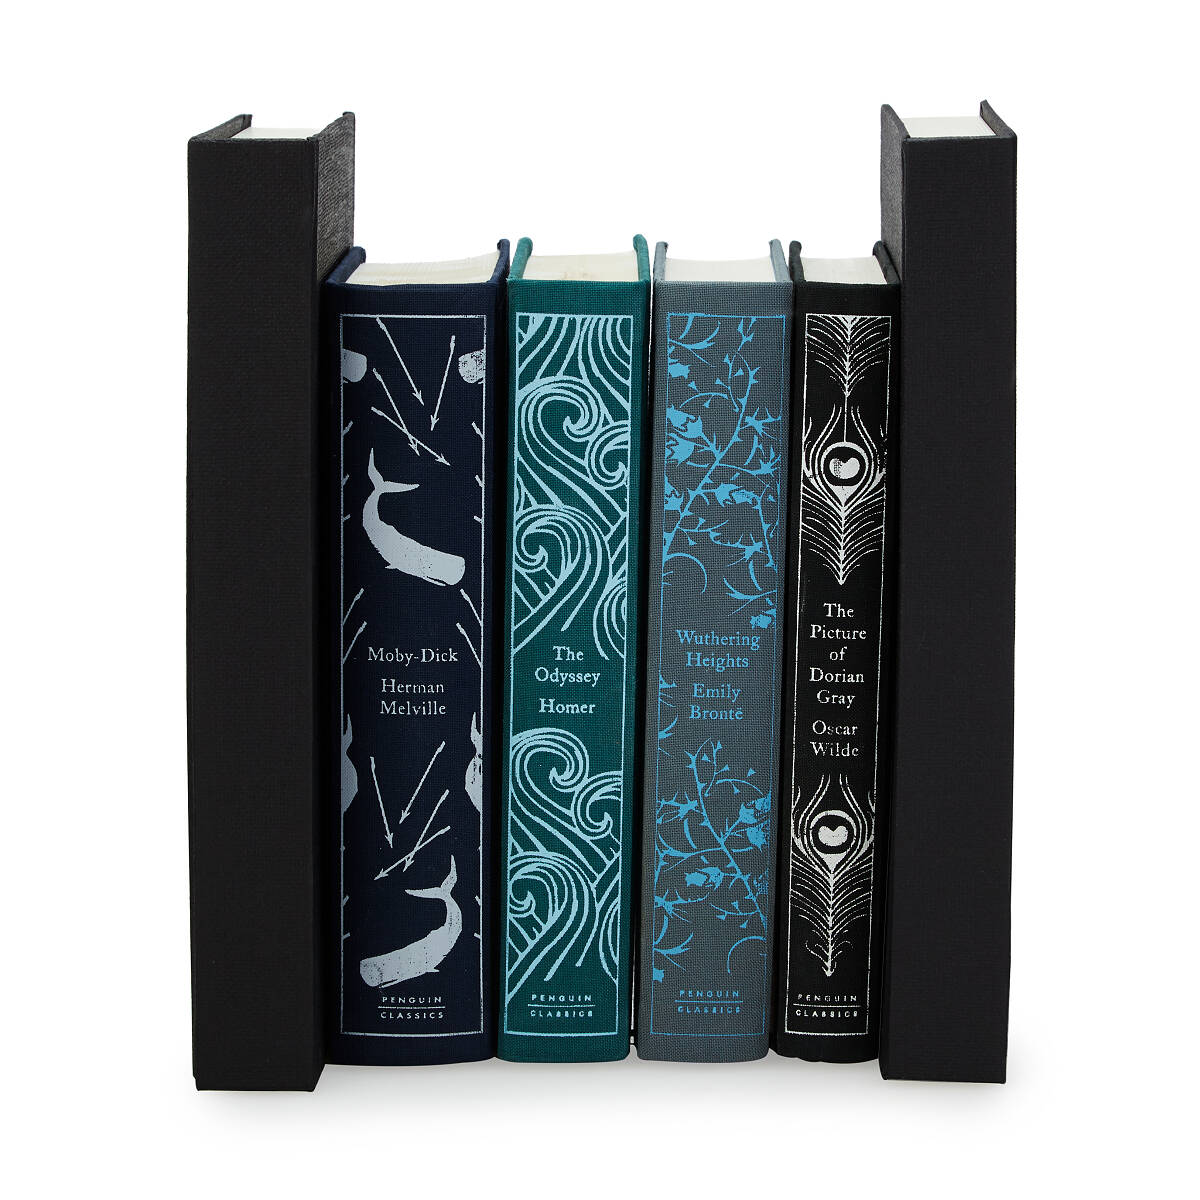 prologue epilogue bookends book gifts bookends uncommongoods